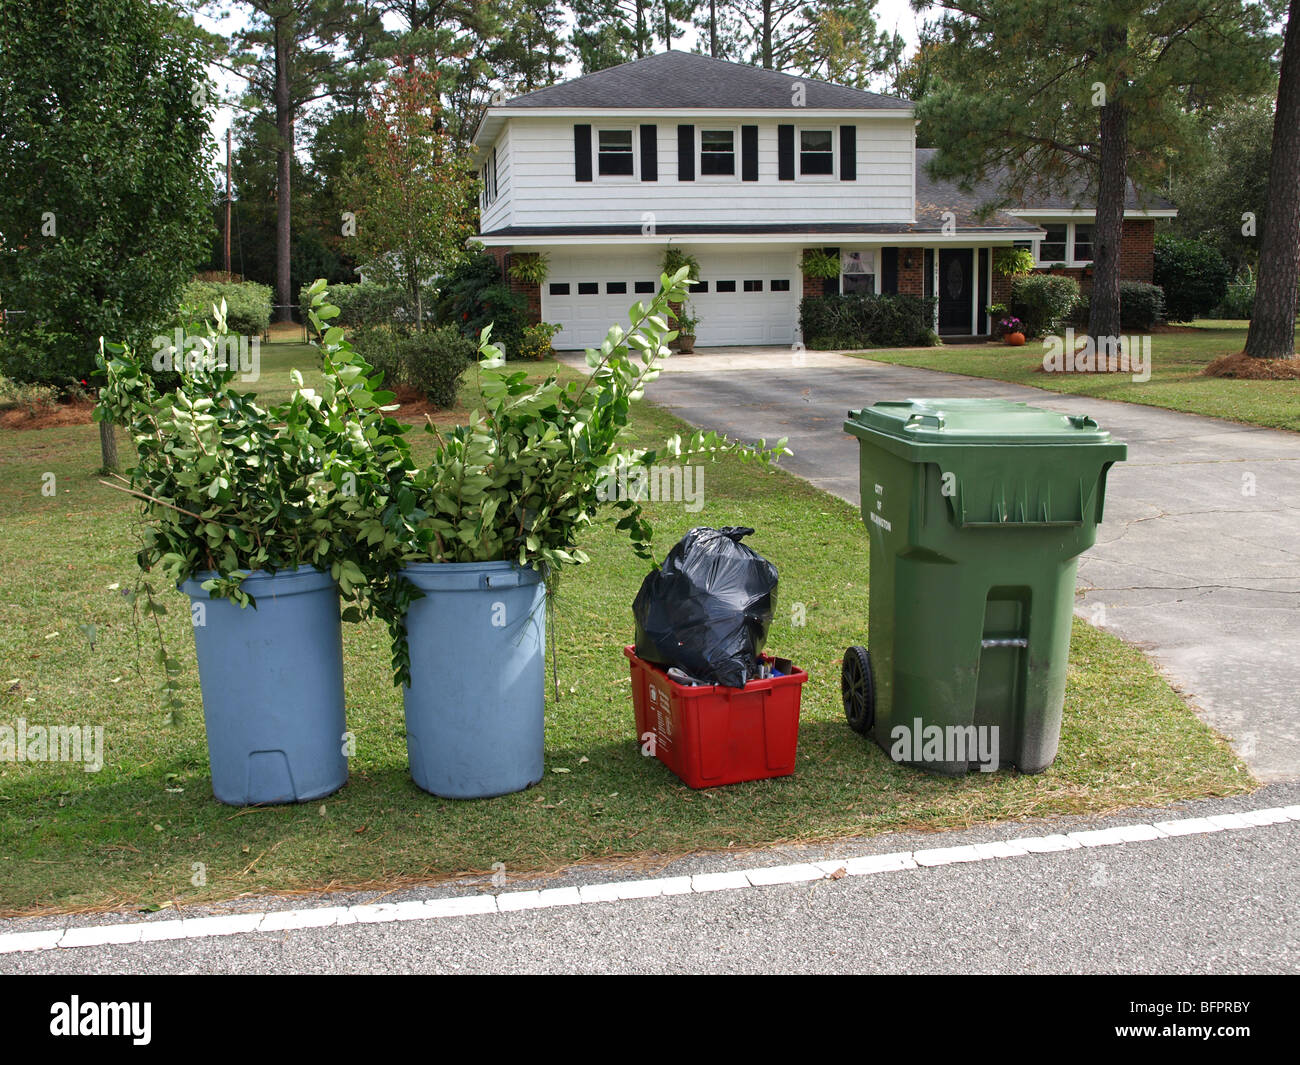 garbage can recycling bin trash yard clippings branches in front of white split-level house in suburban neighborhood - Stock Image